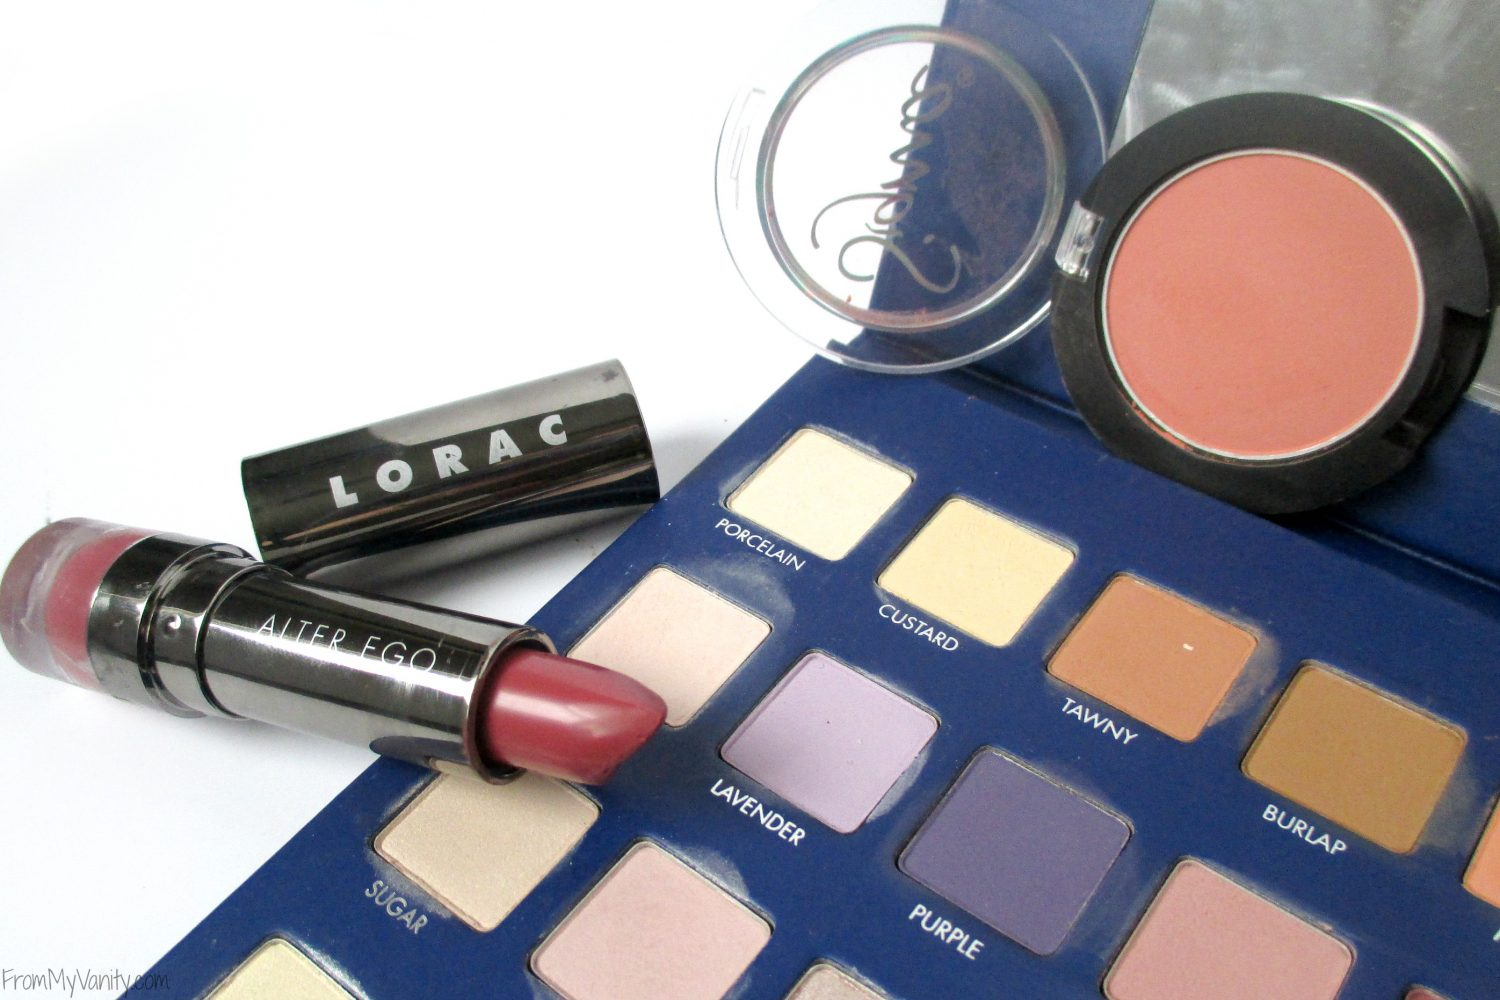 Monthly Beauty Favorites // October 2015 // LORAC Lipstick and Sigma Blush // FromMyVanity.com